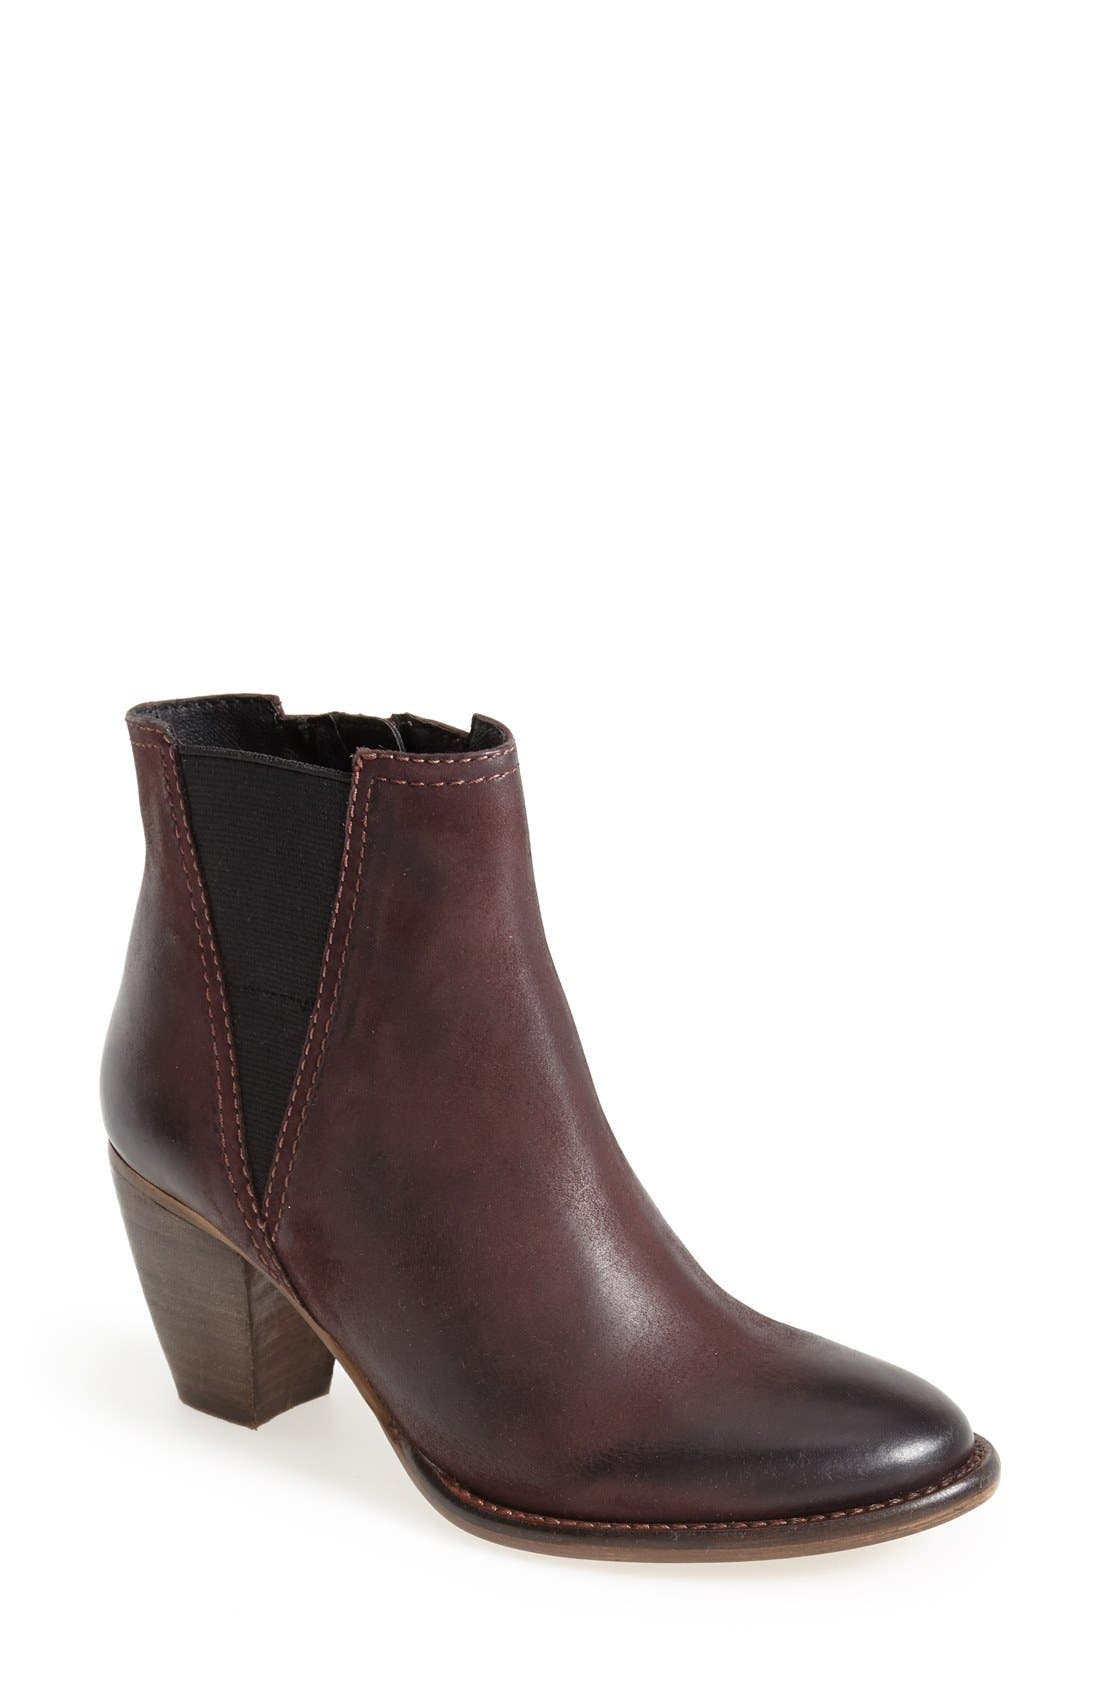 Main Image - Steve Madden 'Shearly' Leather Bootie (Women)